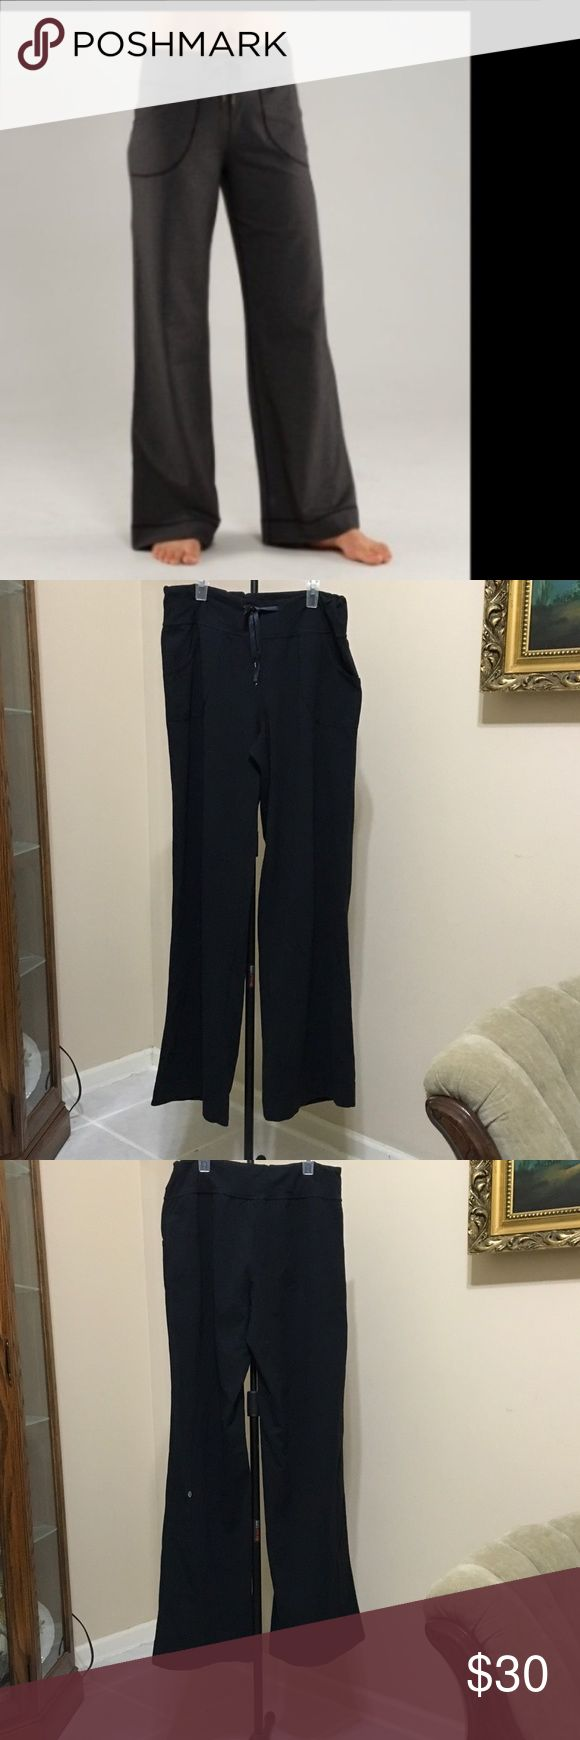 Lululemon wide leg sz8 x32 Lululemon wide leg pants in used condition draw string missing one of the metal ends and some pilling in crotch area no rips or stains lululemon athletica Pants Wide Leg